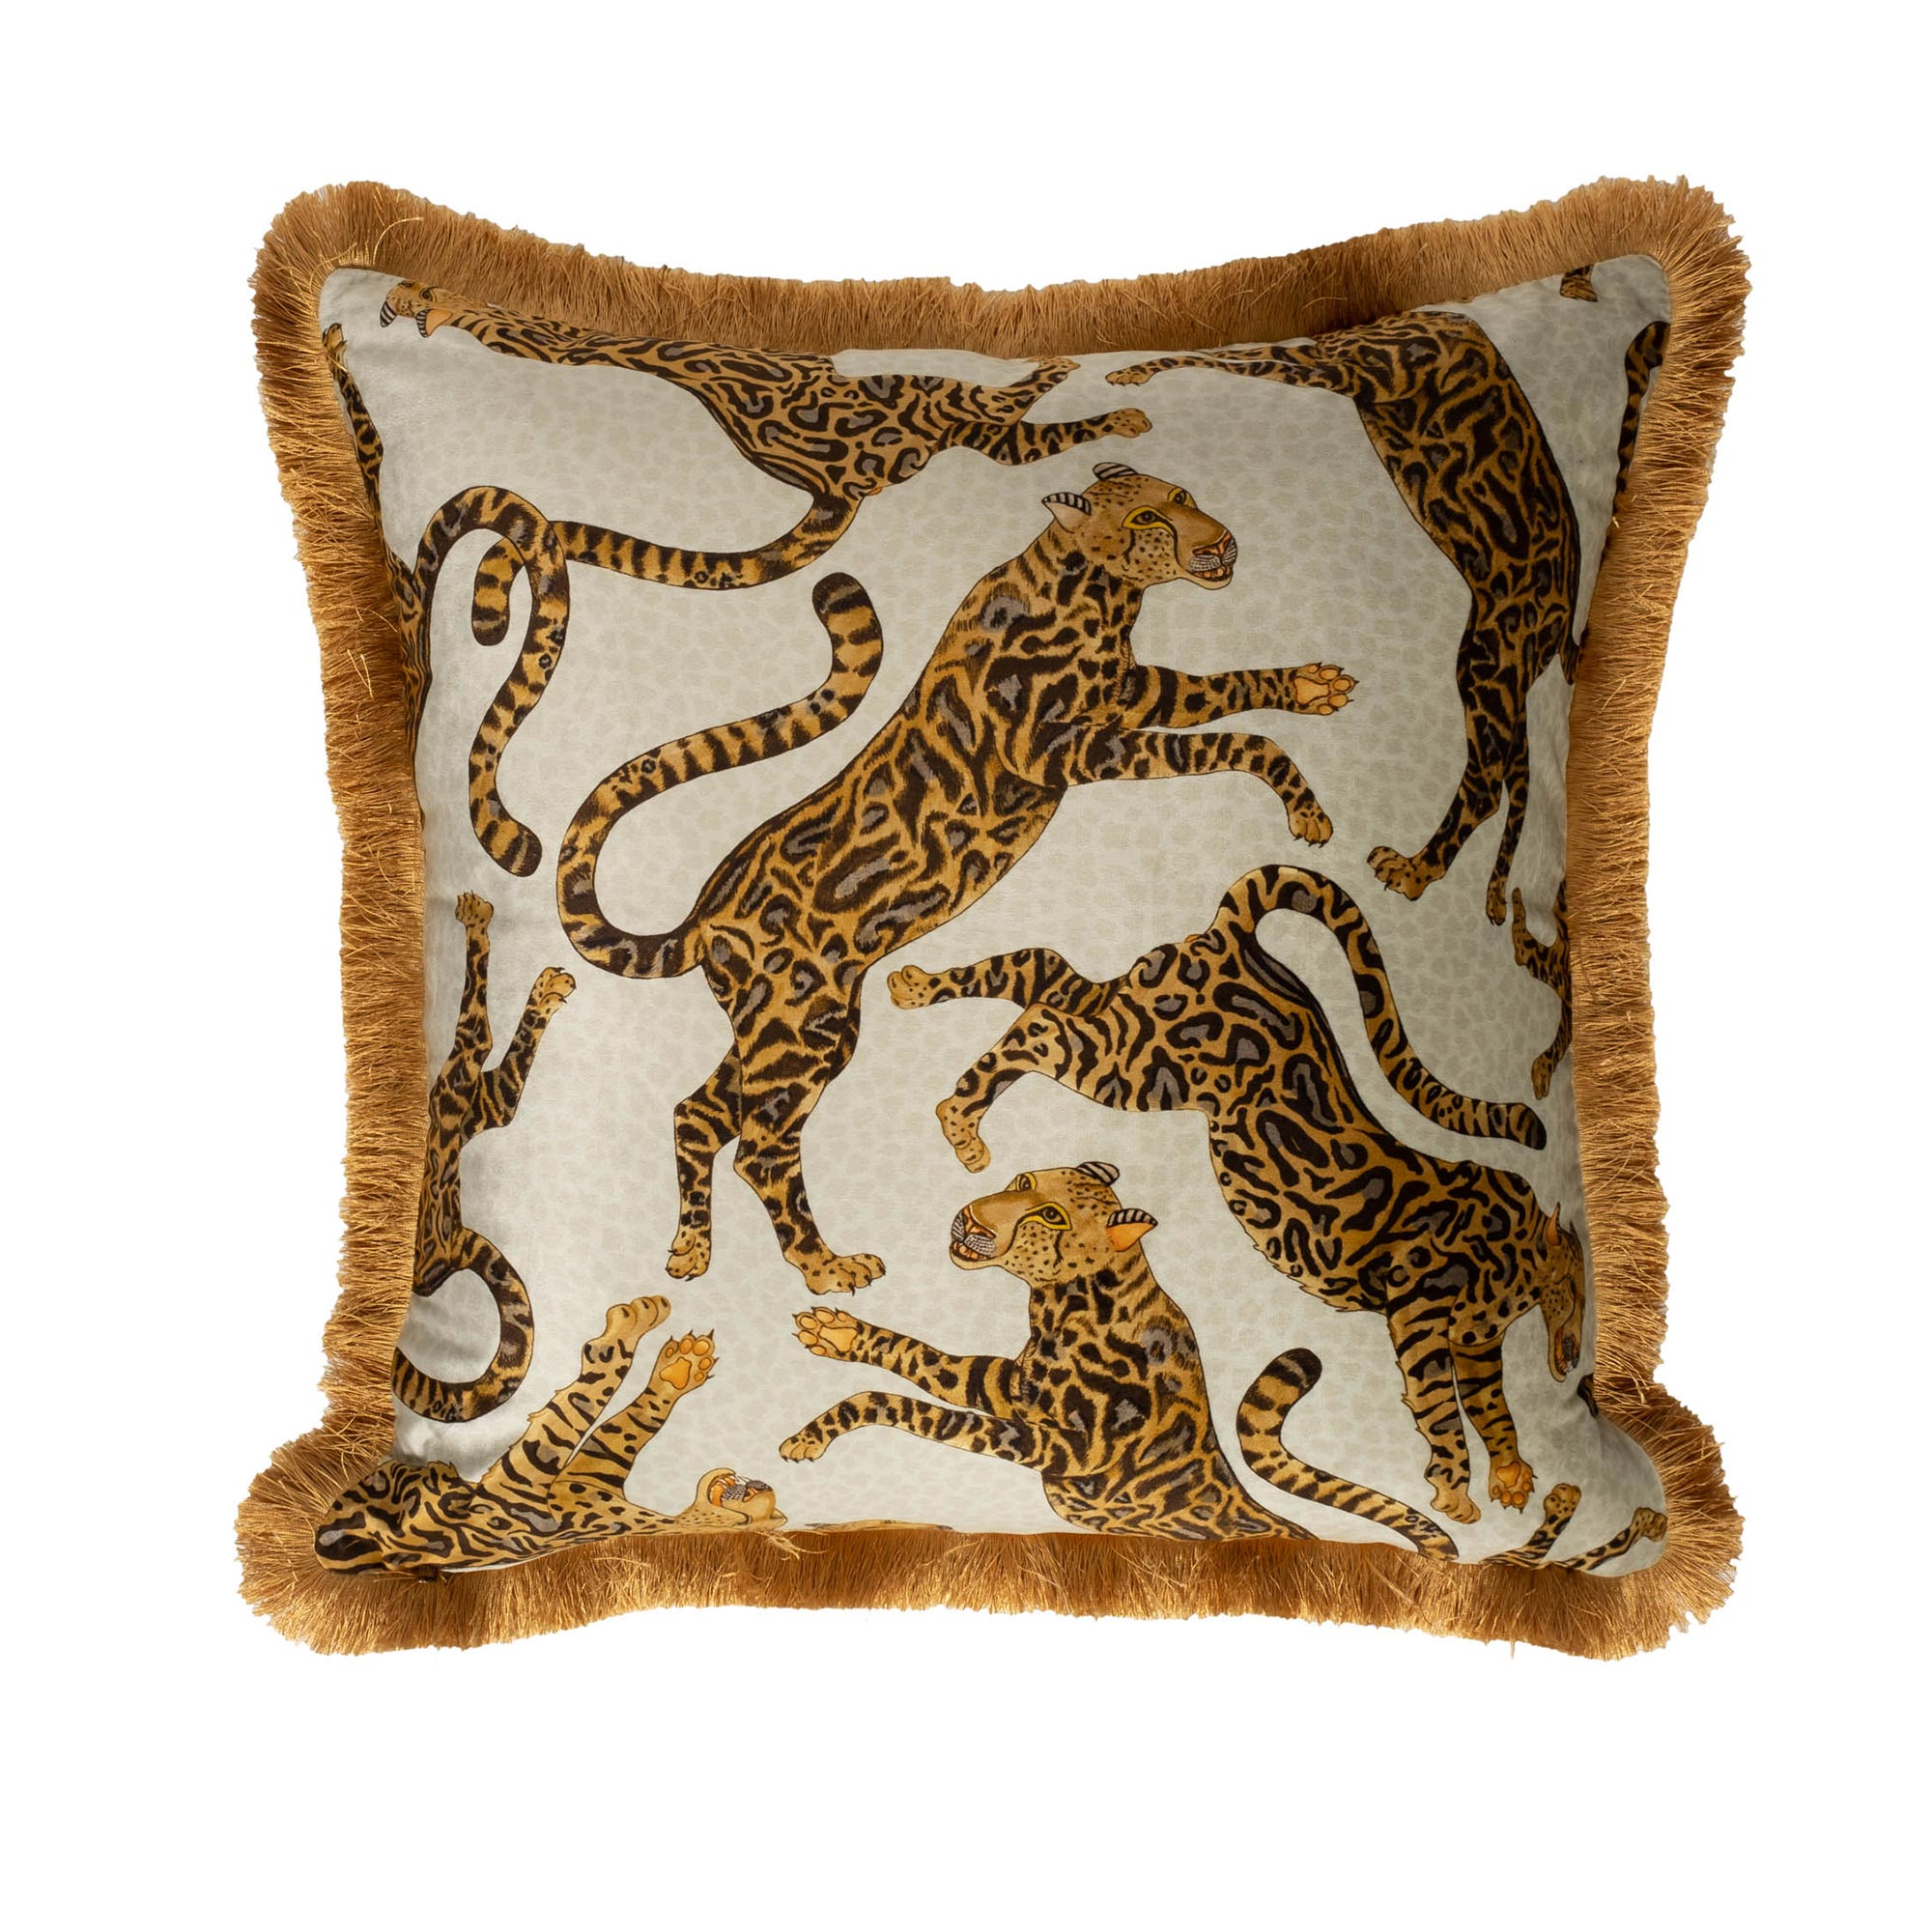 Cheetah Kings Pillow - Velvet w/ Fringe - Stone